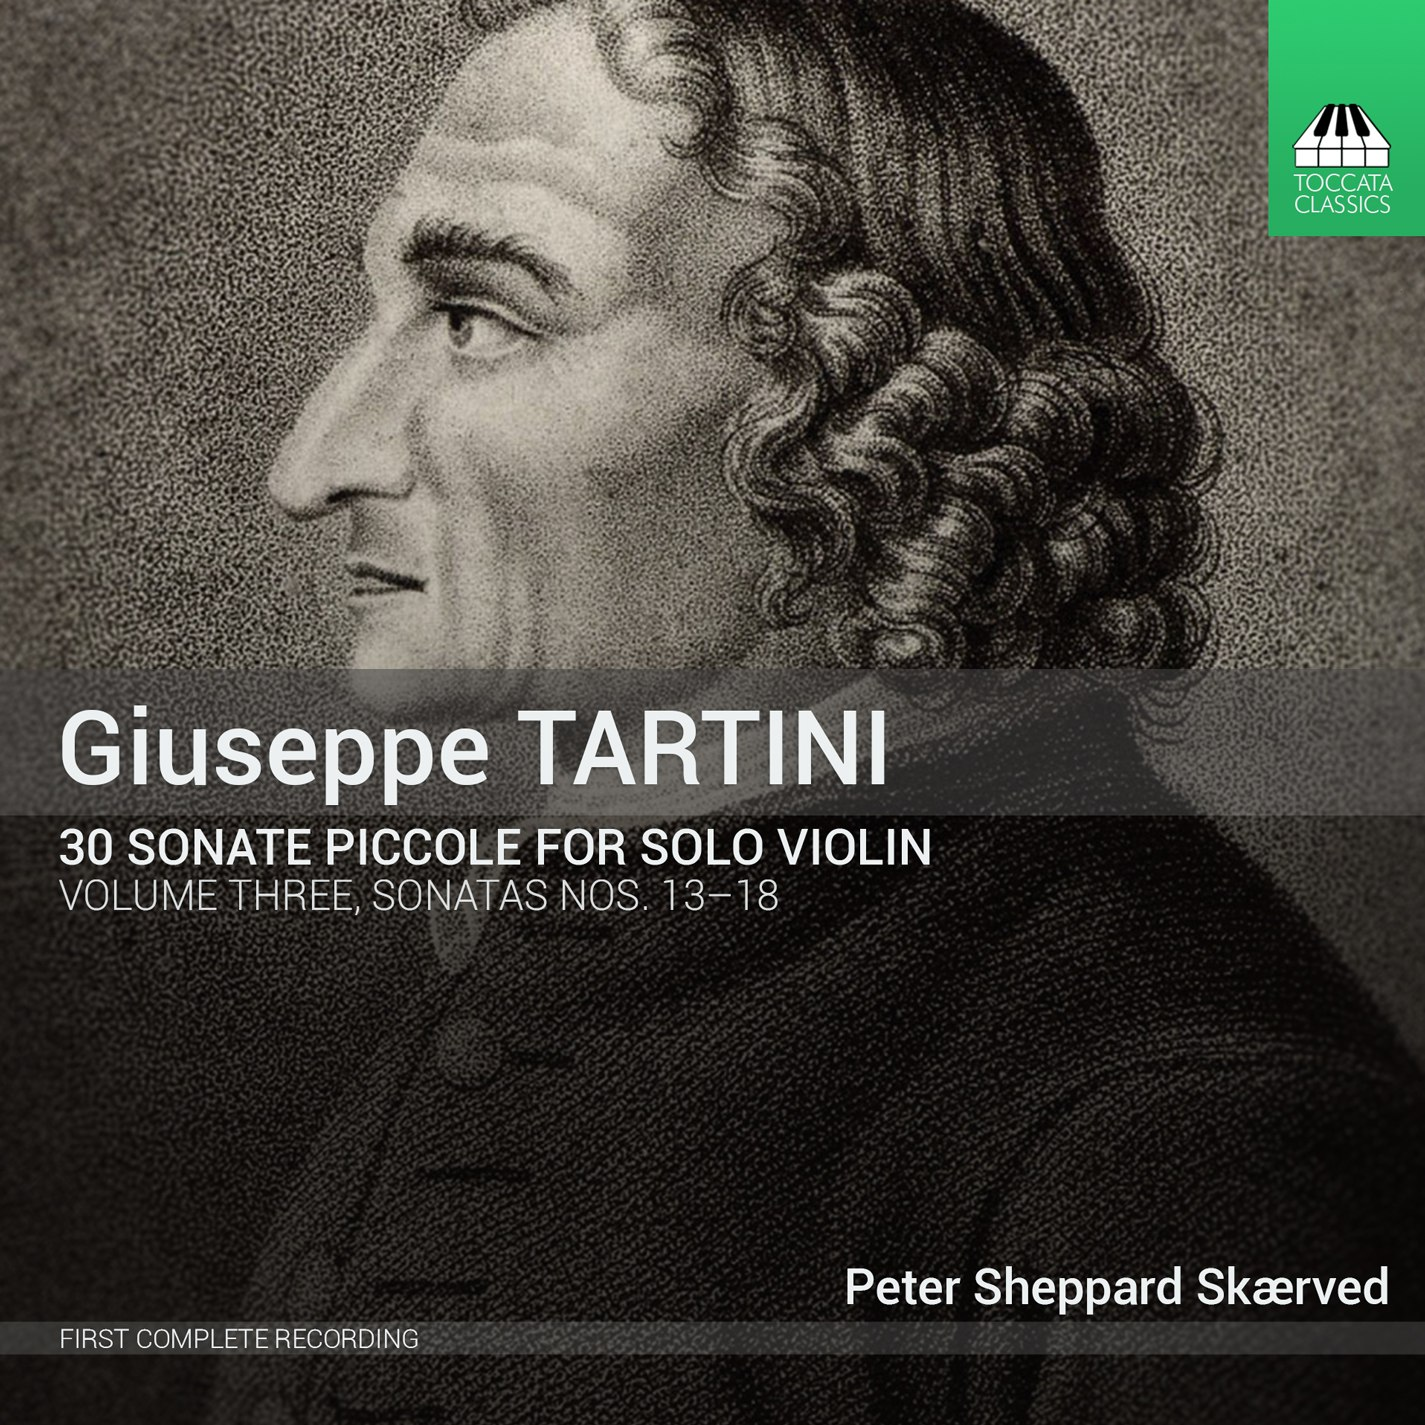 Giuseppe Tartini: 30 Sonate Piccole for Solo Violin, Volume Three: Sonatas Nos. 13-18